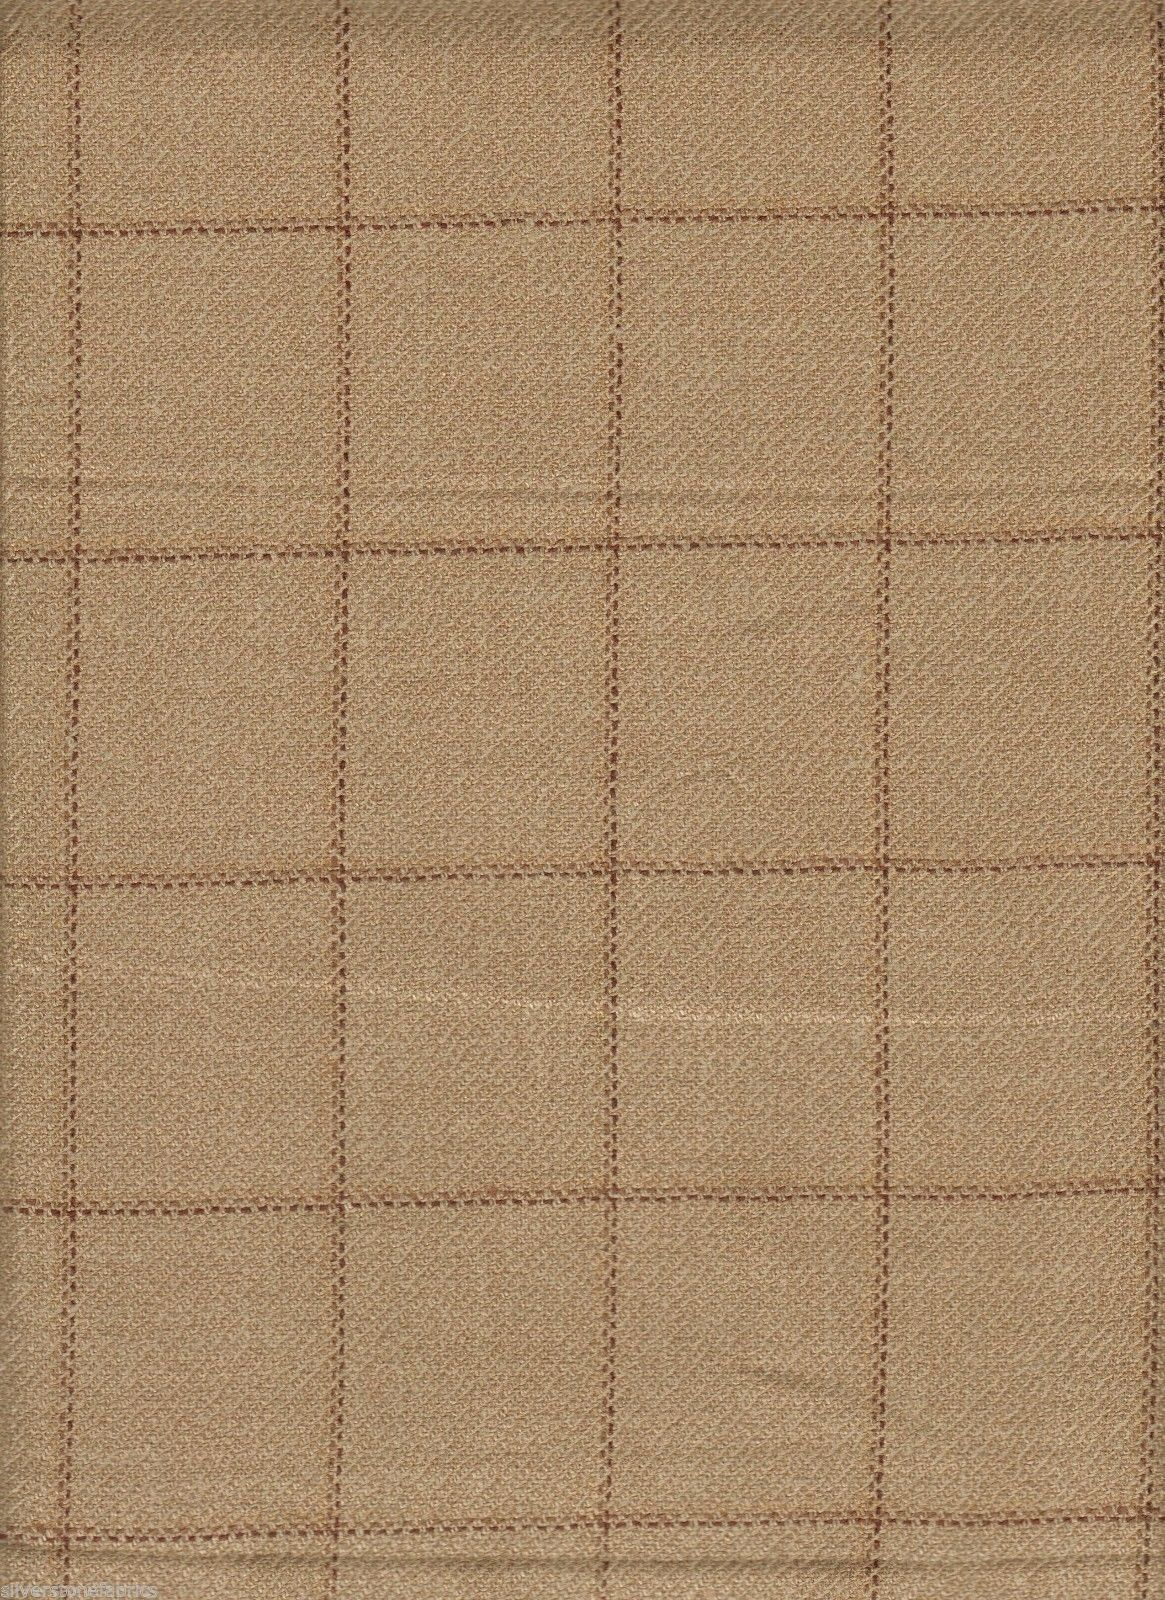 3.25 yds Holland & Sherry Upholstery Fabric Scottish Wool Tweed Plaid Wheat GI2